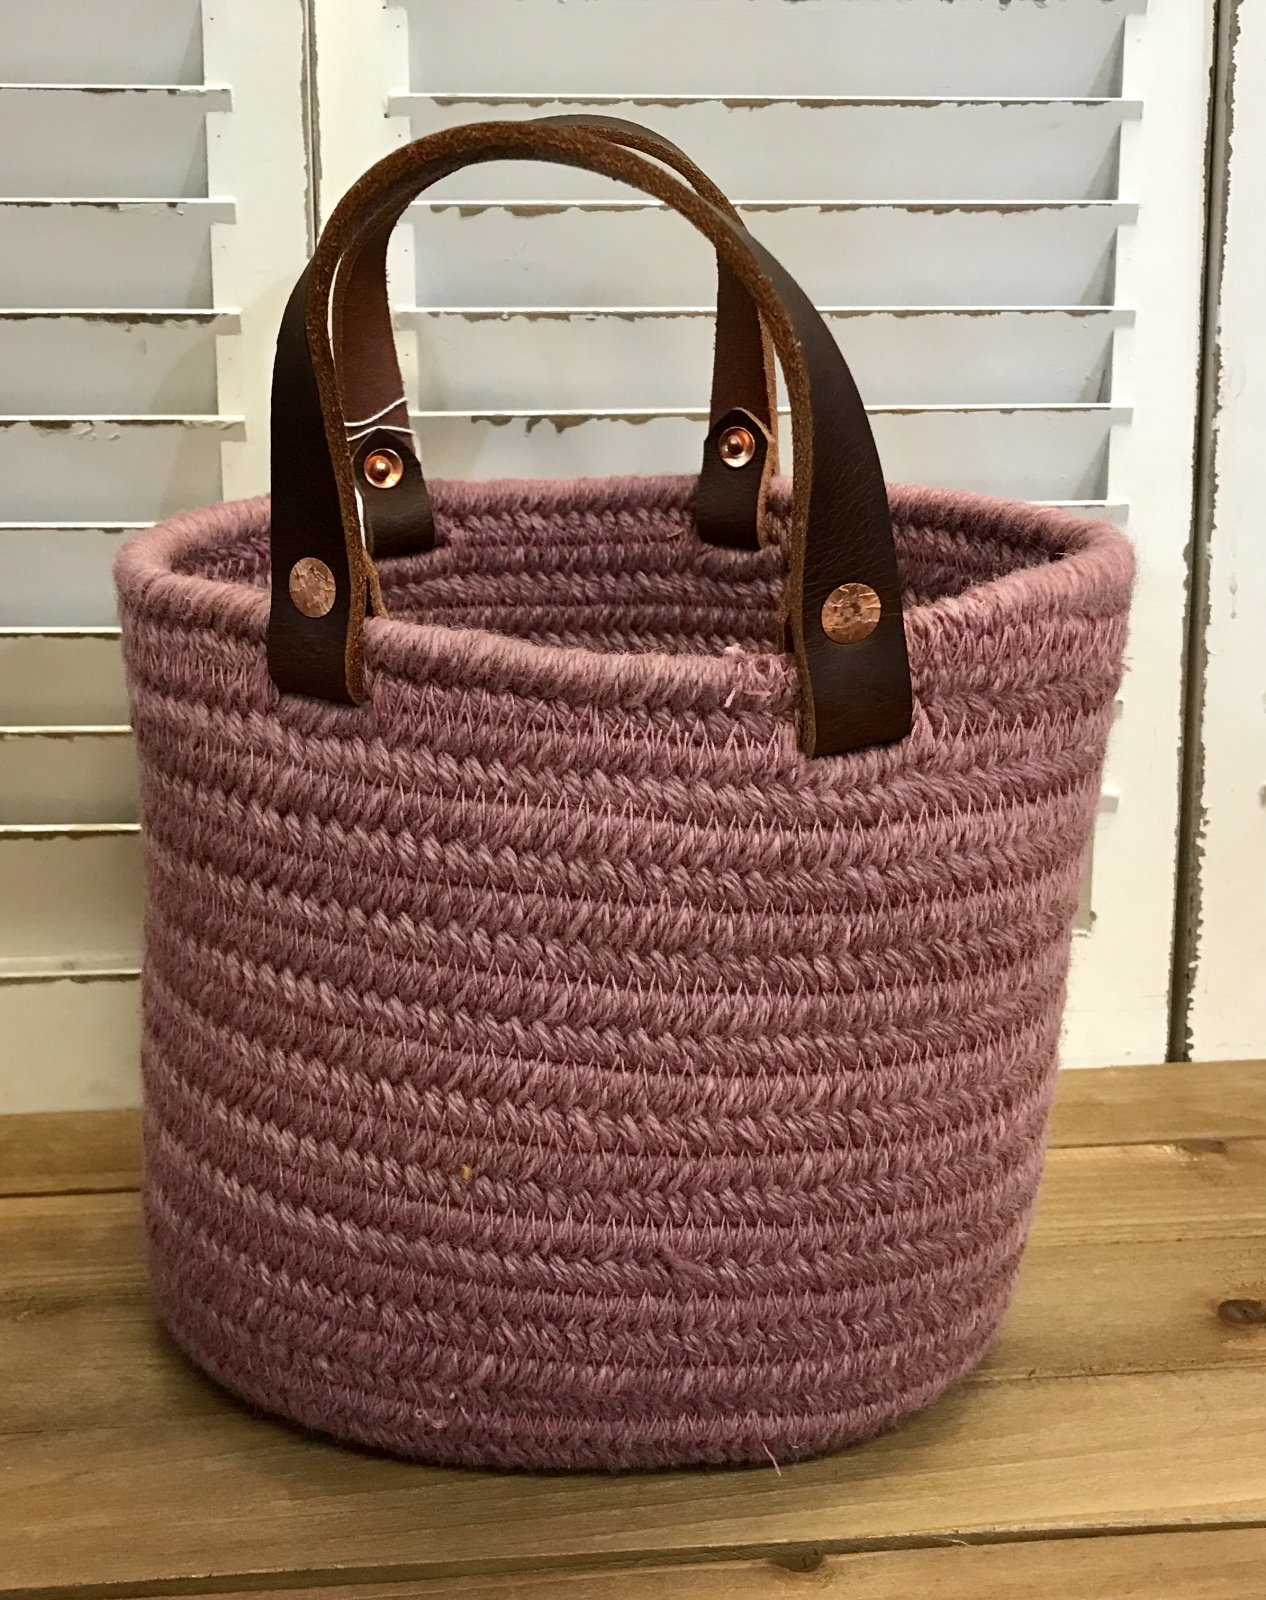 New Zealand Wool Braided Baskets Made in the USA